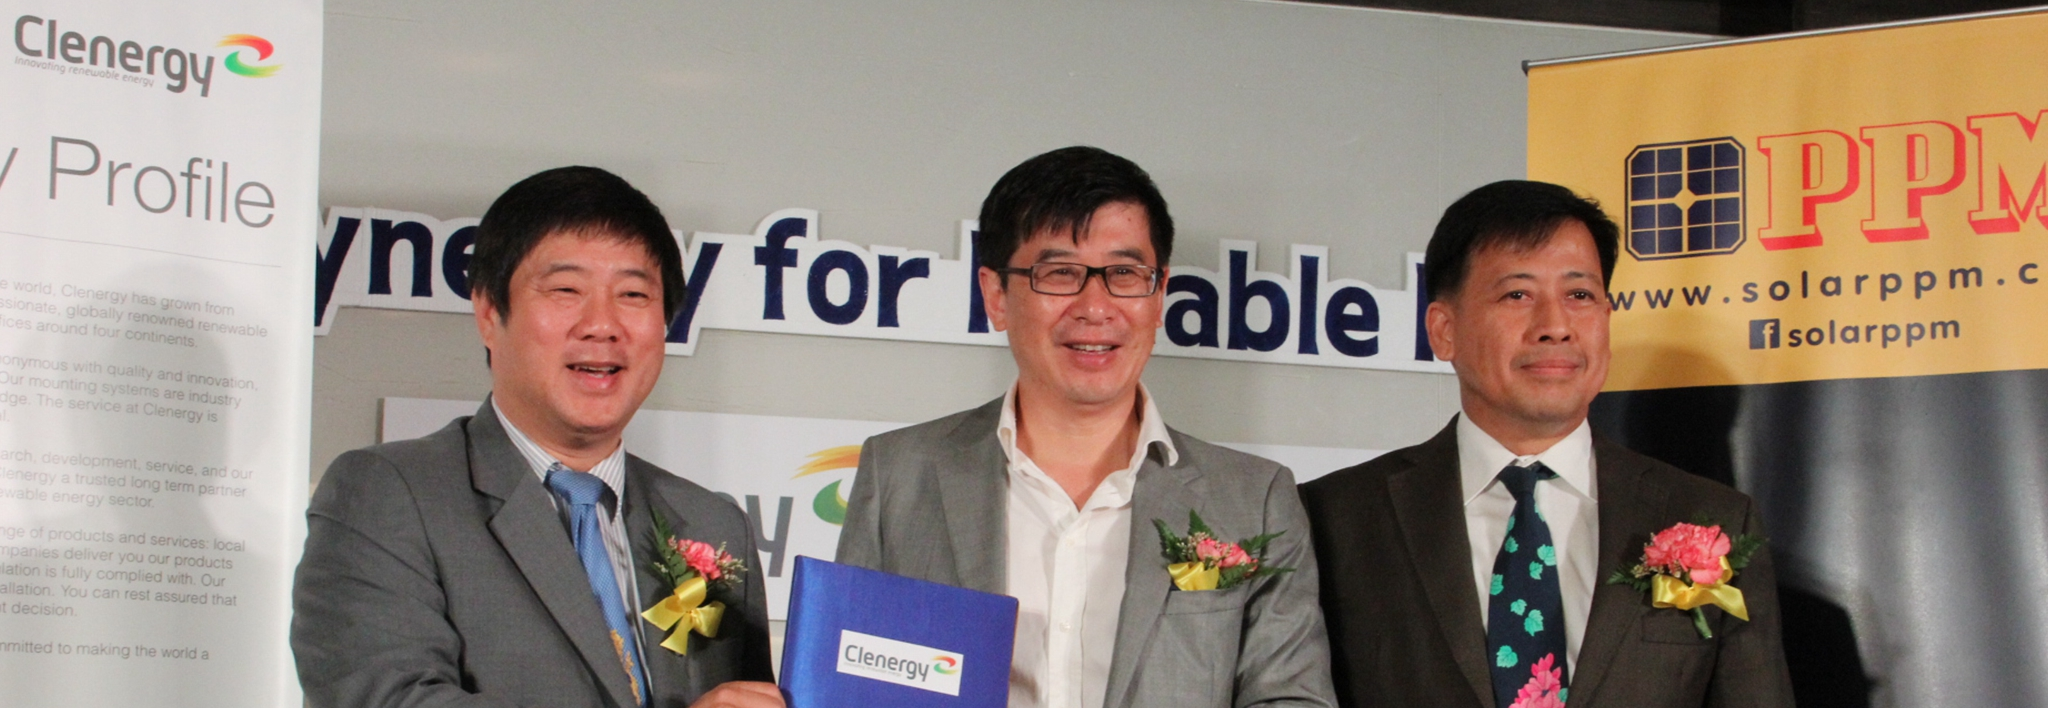 Clenergy PV Seminar in Bangkok with Solar PPM and Huawei